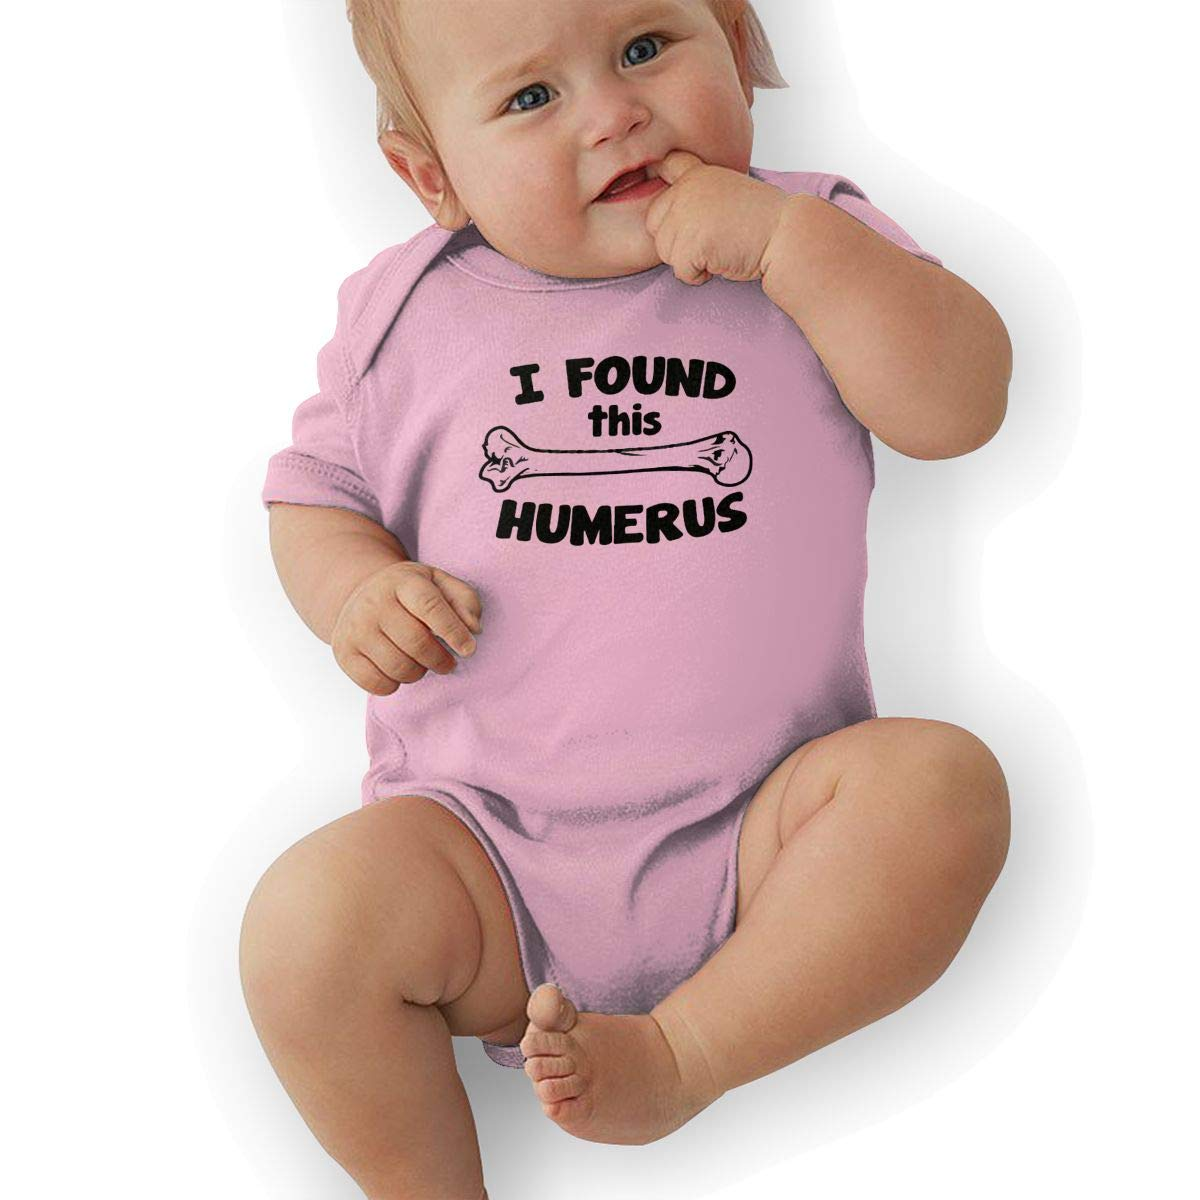 Mri-le2 Baby Boy Short Sleeve Bodysuits I Found This Humerus 1 Toddler Jumpsuit